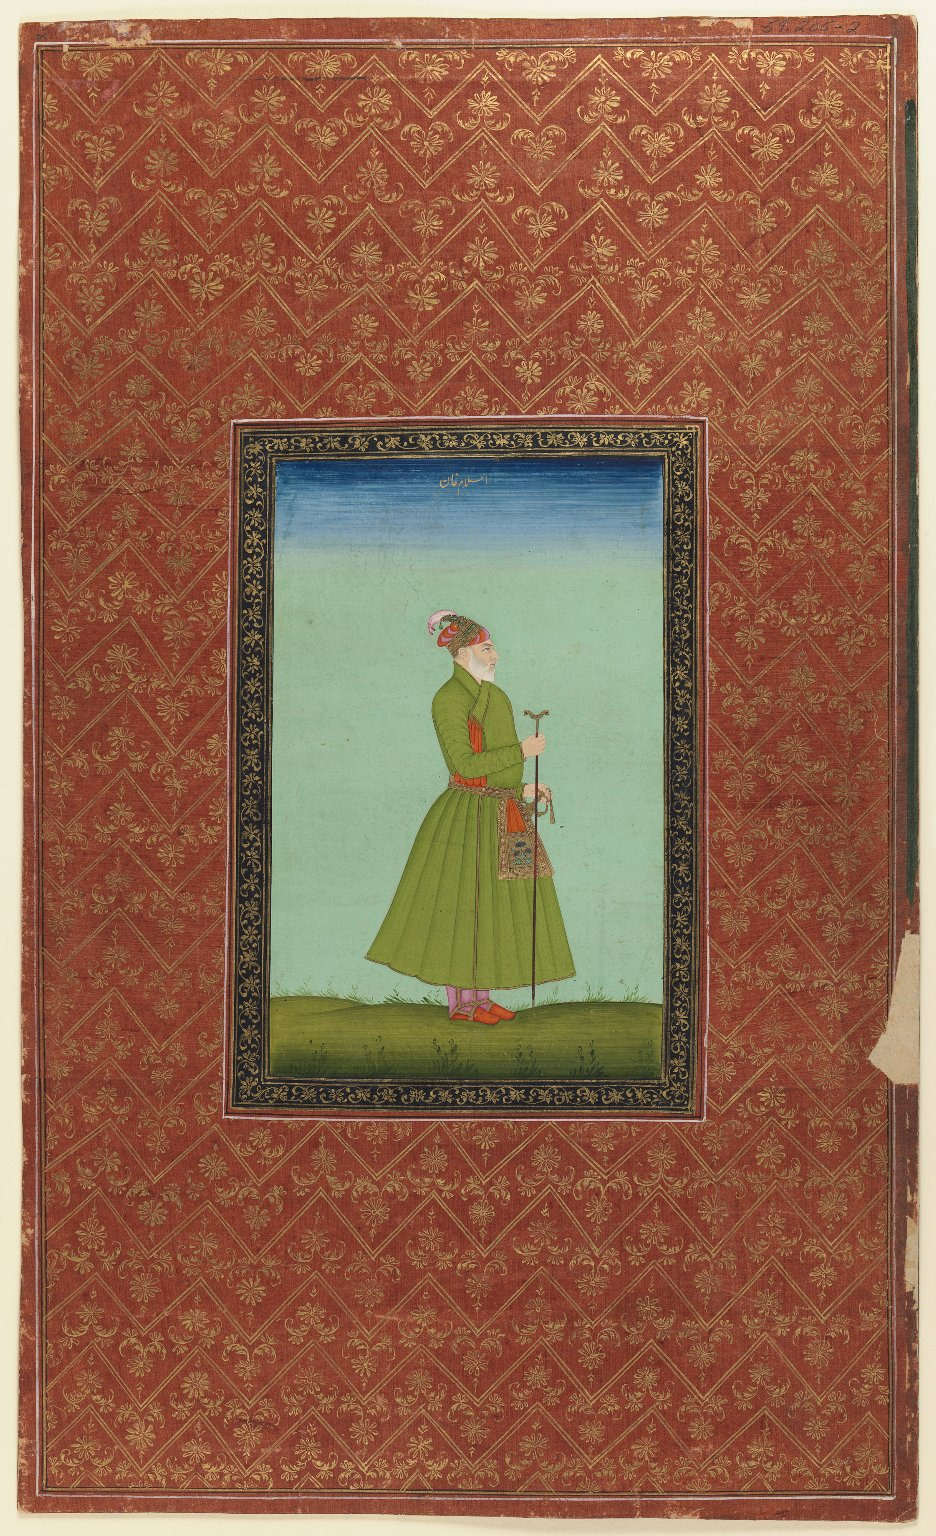 Brooklyn Museum: Islam Khan Rumi